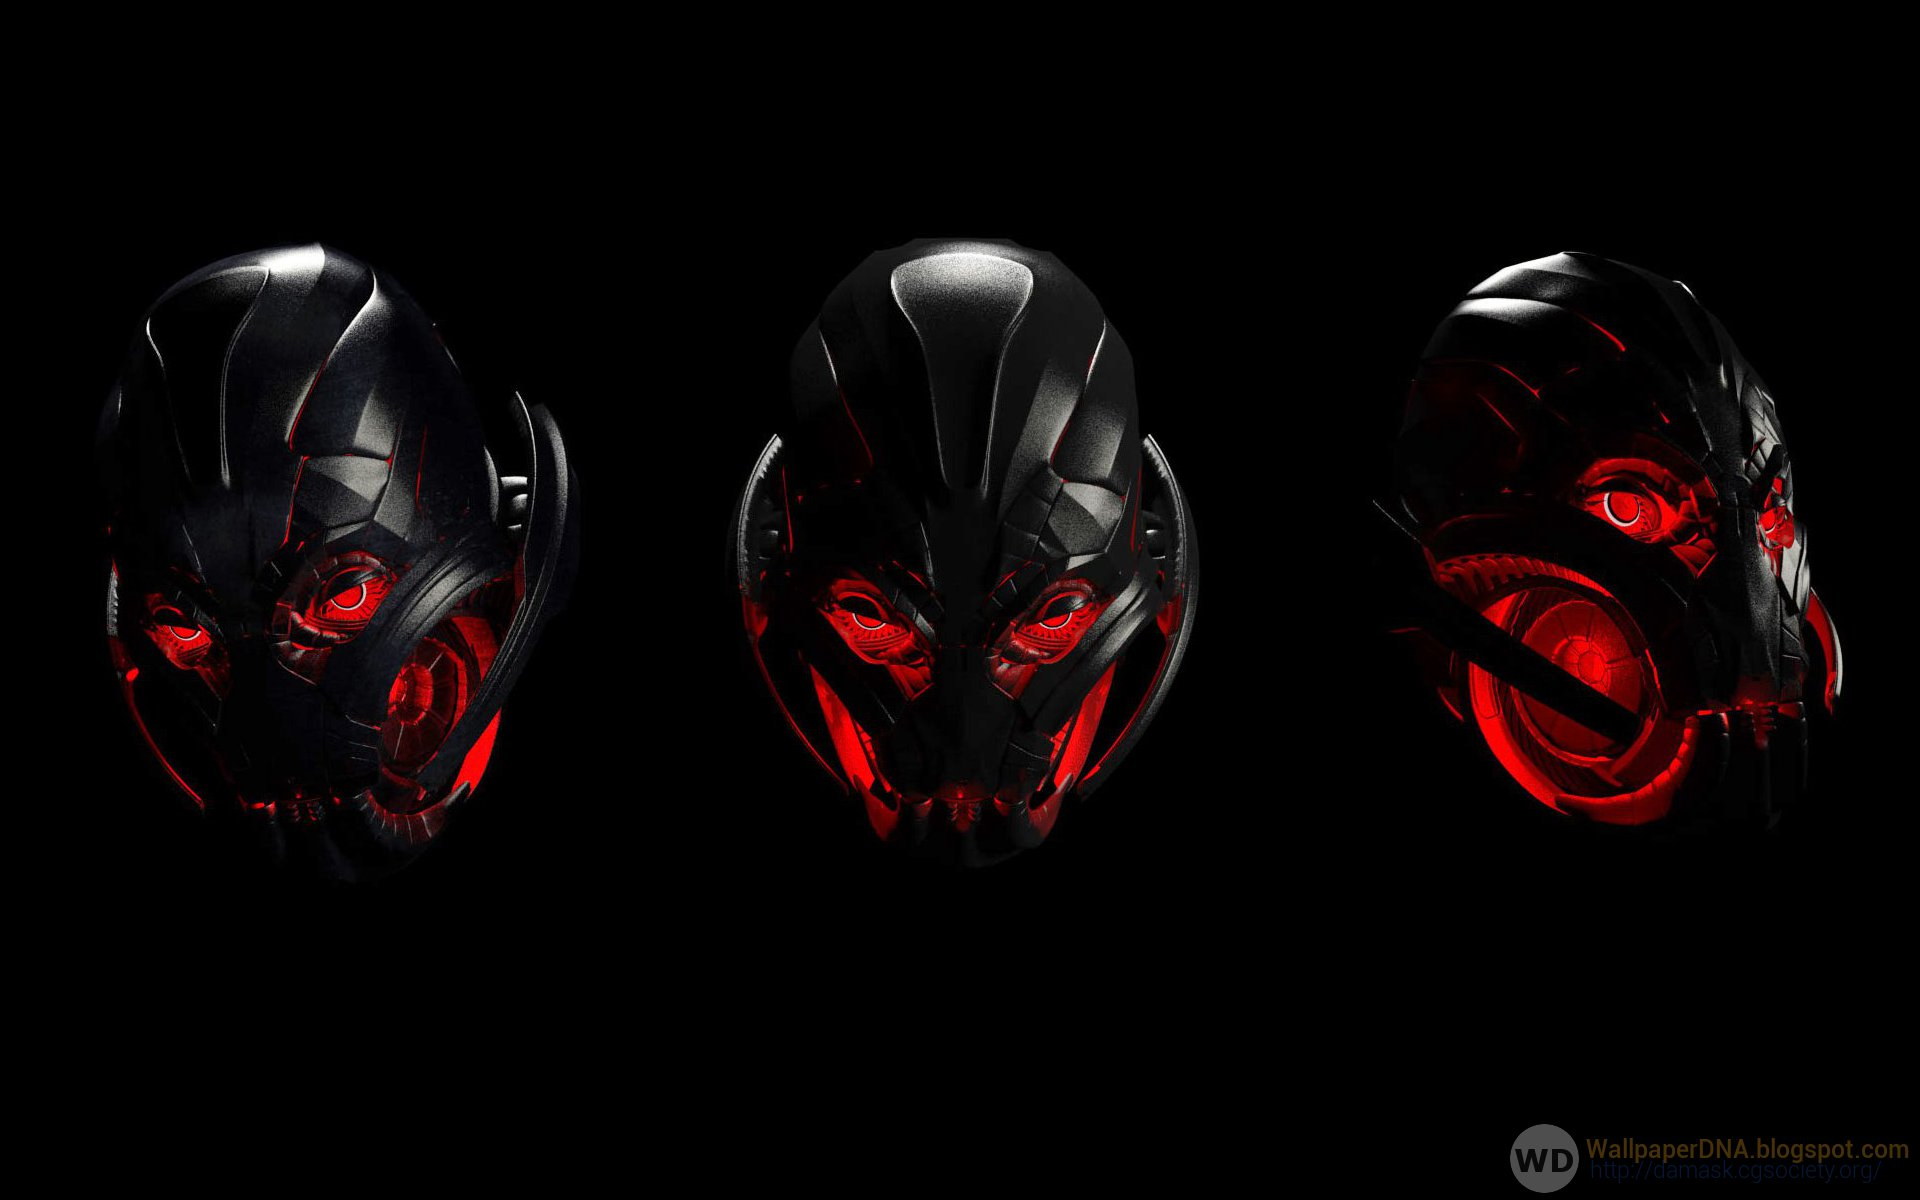 The Avengers Age Of Ultron wallpaper  wallpaper free download 1920x1200